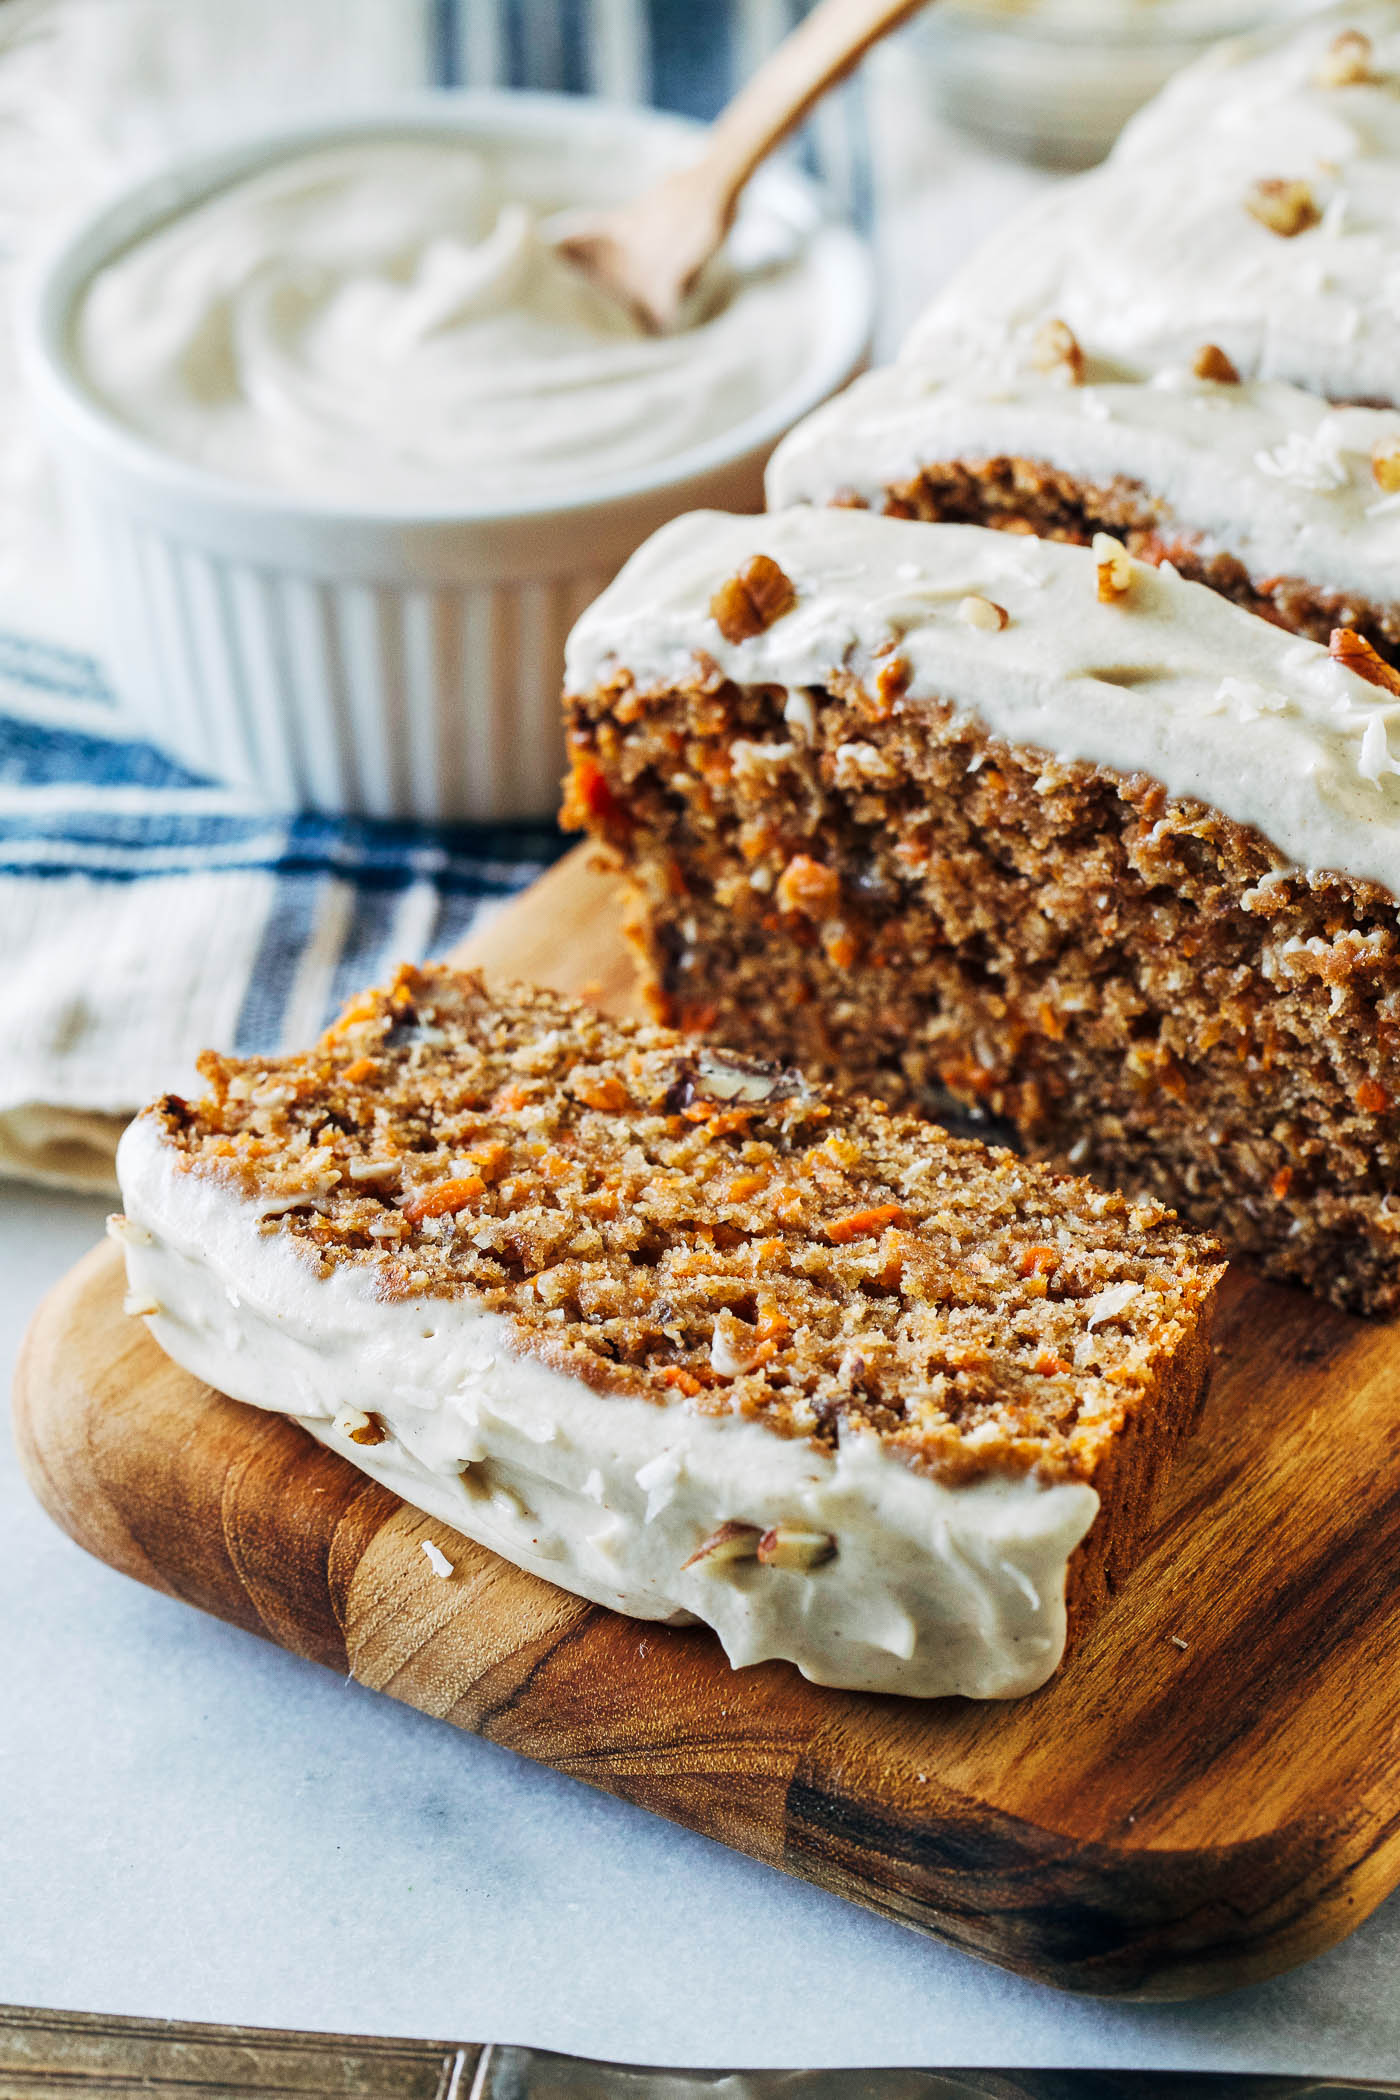 Vegan Banana Carrot Bread with Cashew Cream Cheese Icing   Making     Vegan Banana Carrot Bread with Cashew Cream Cheese Icing  banana replaces  egg in this recipe for a lighter take on carrot cake with irresistible  flavor